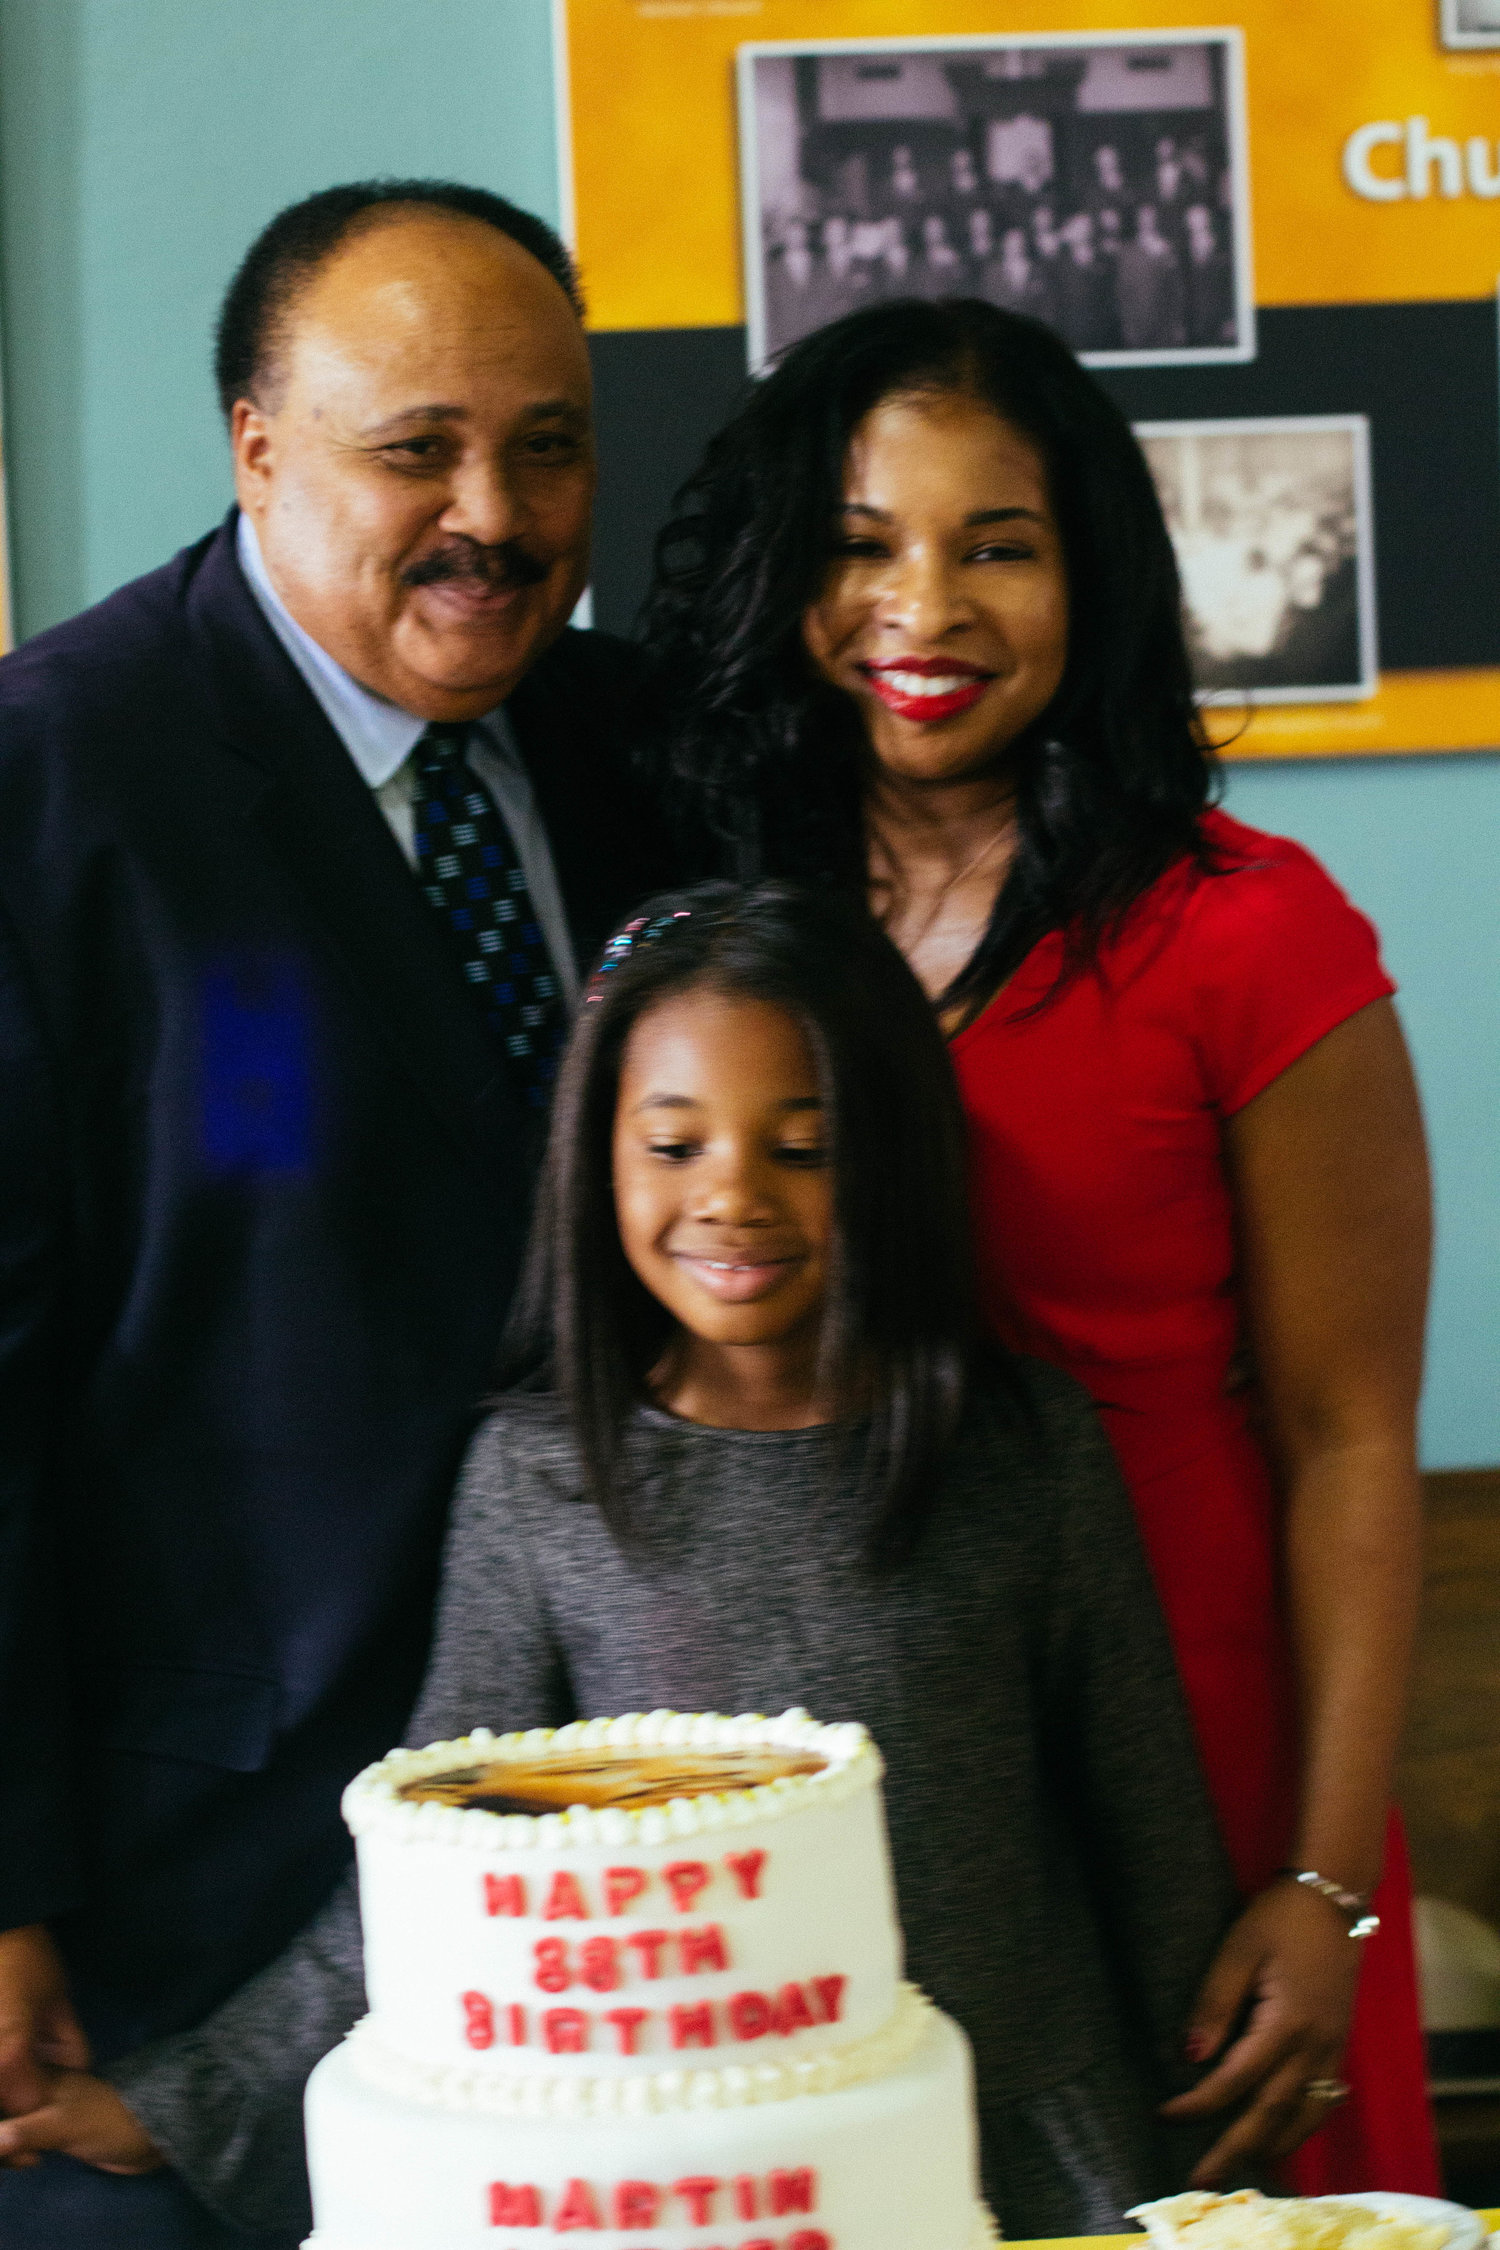 Martin Luther King III, his wife Arndrea KIng, and Yolanda Renee King preparing to cut MLK's 88th birthday cake